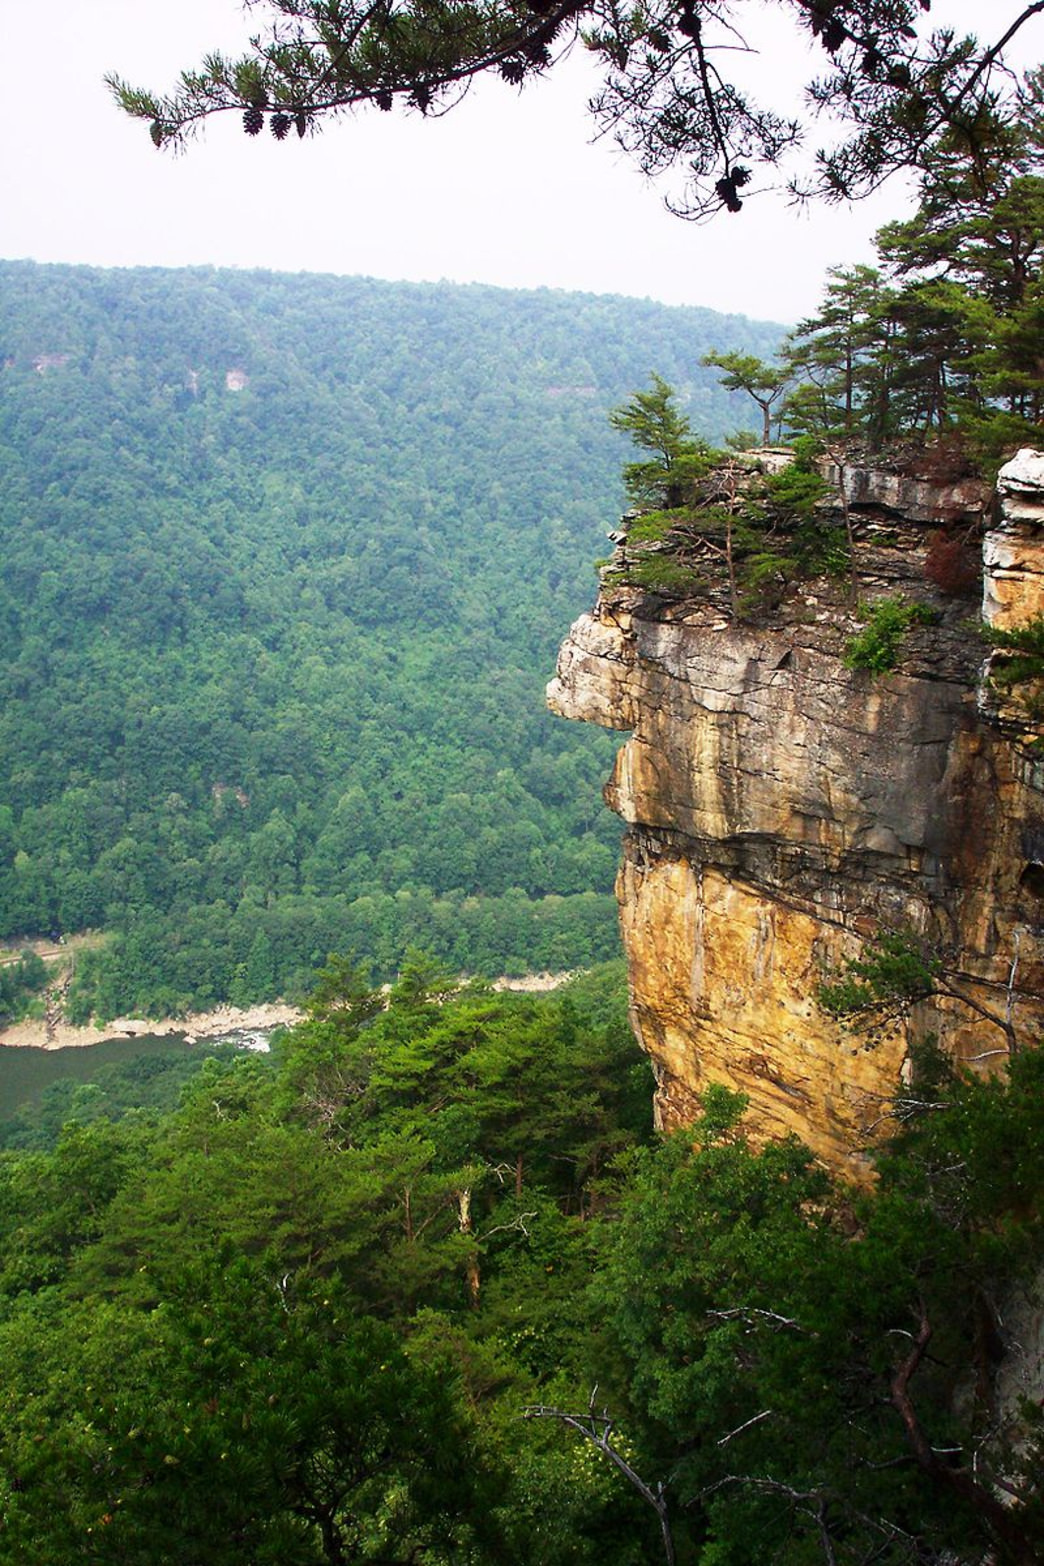 The Endless Wall at the New River Gorge is fun for hikers and rock climbers.